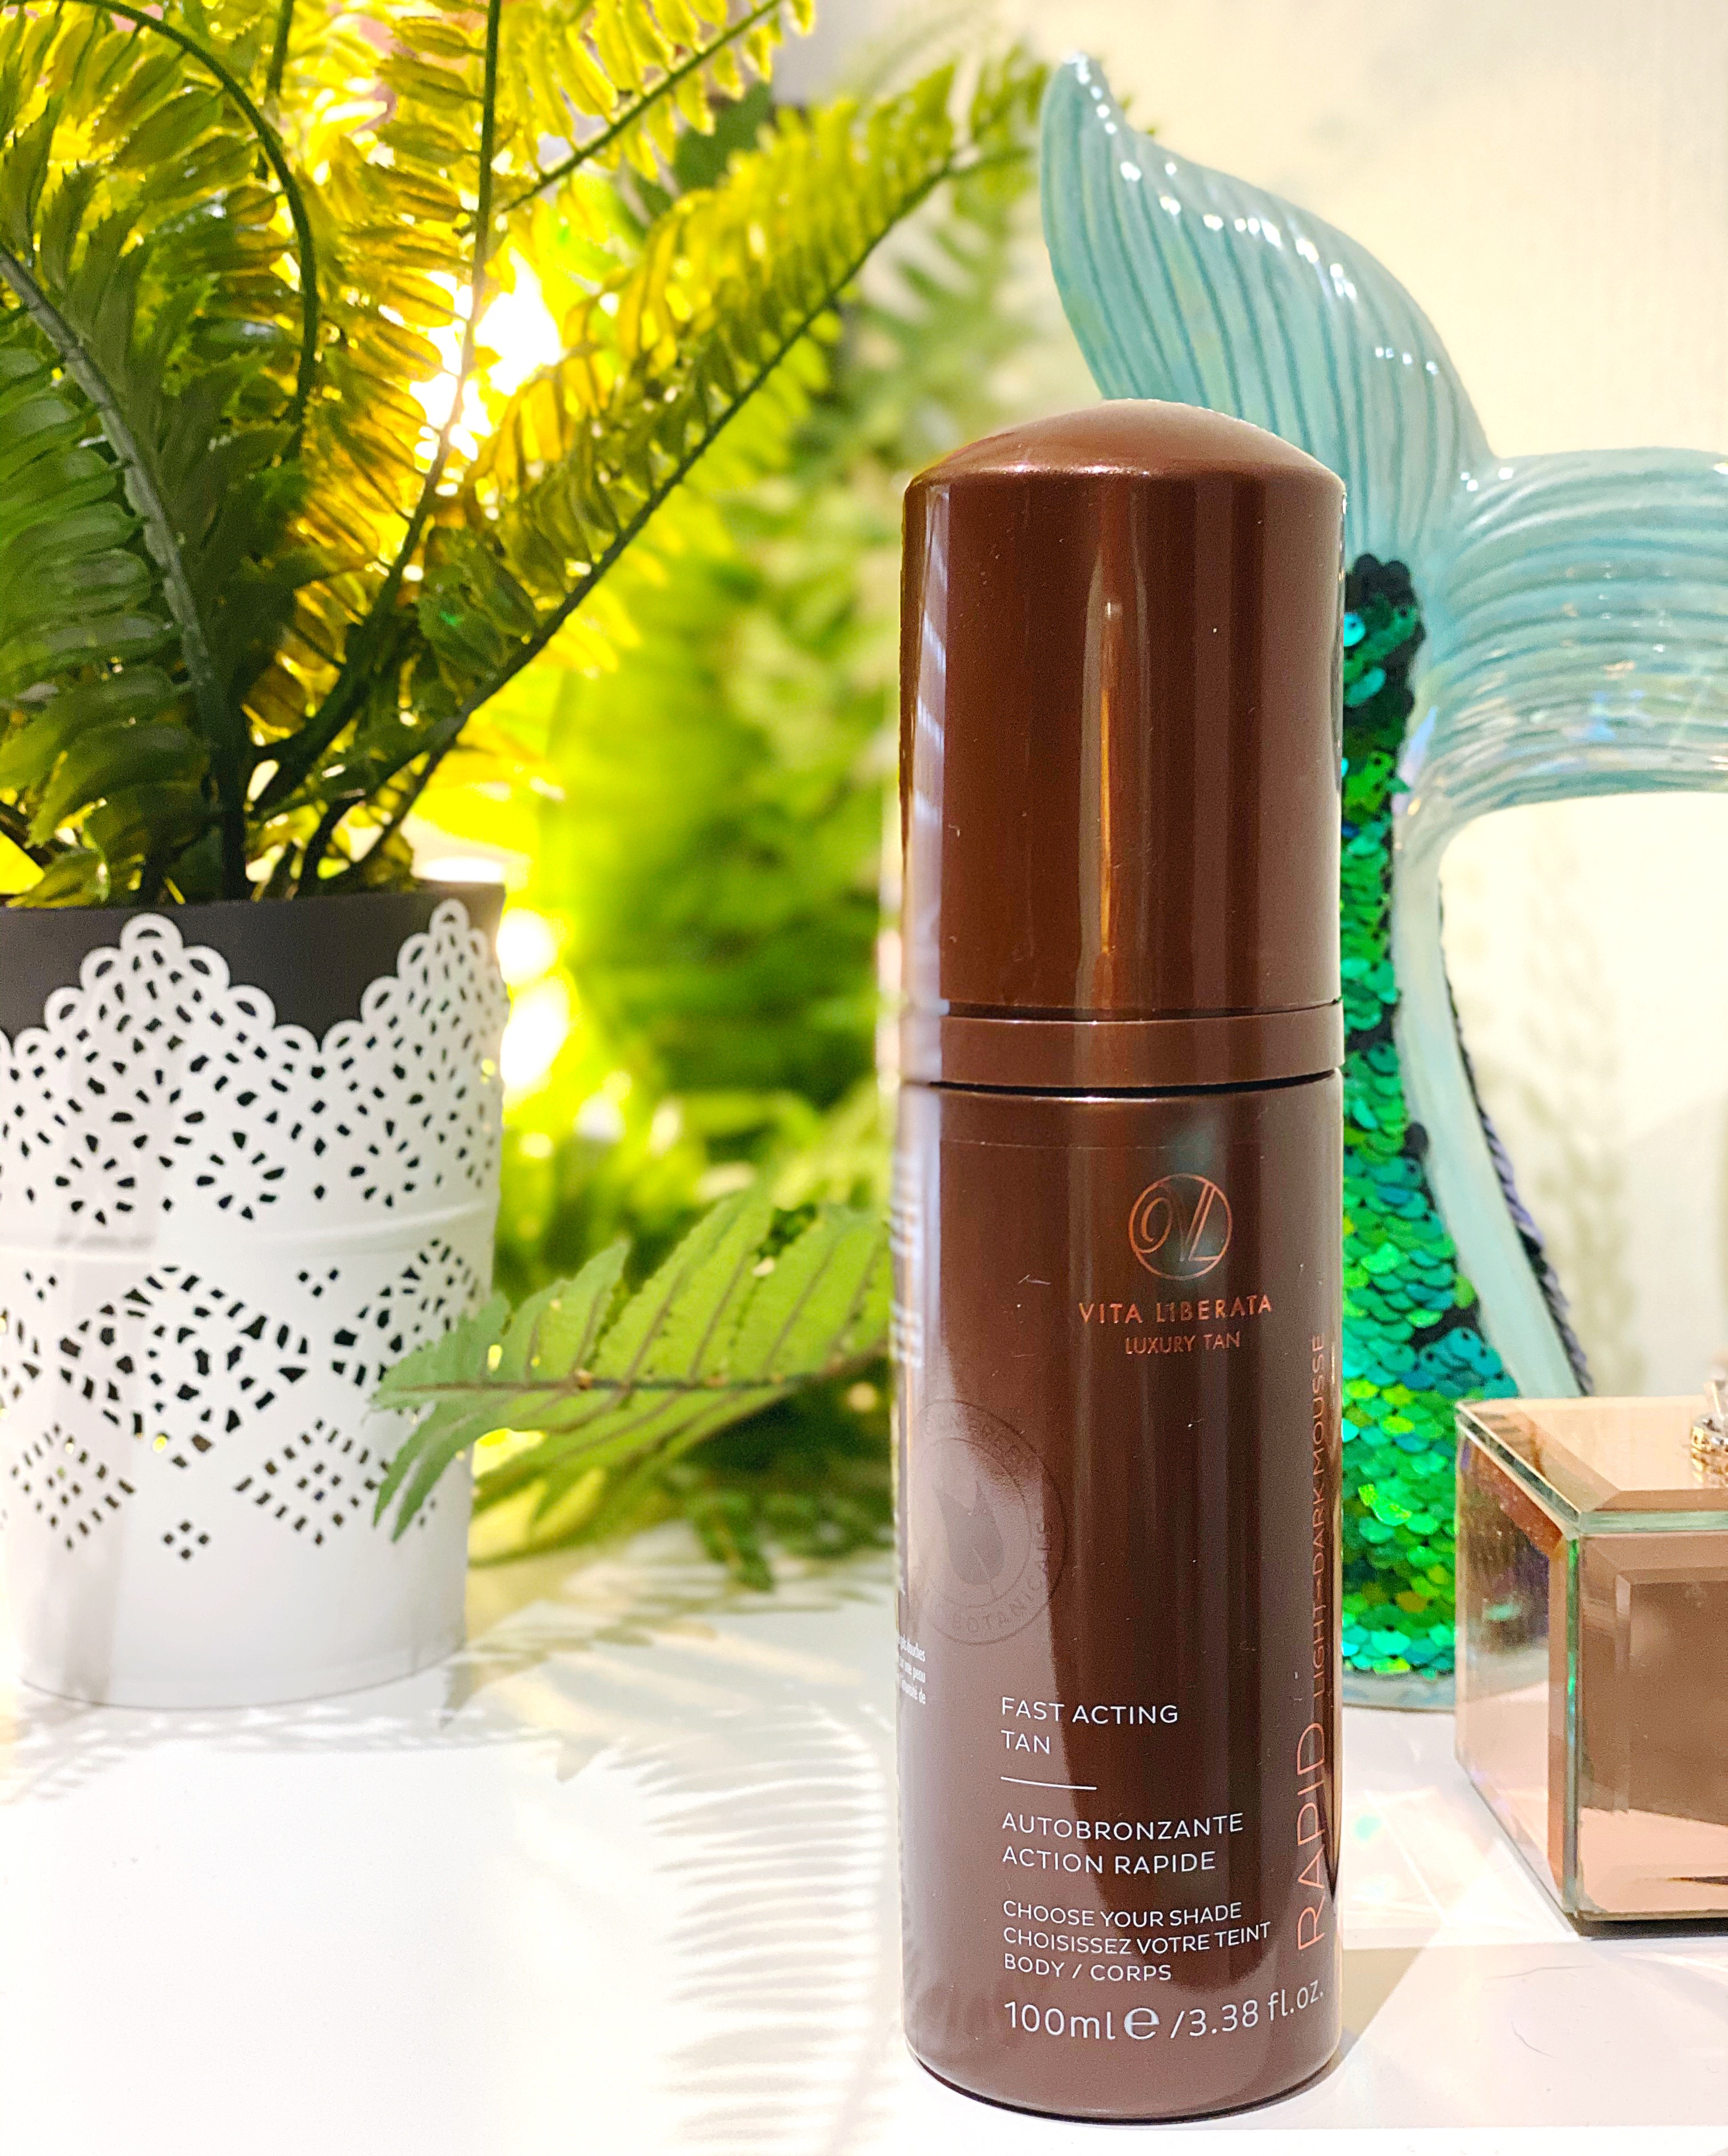 vita liberata ALCHEMY BY AMY UK My Clean/Non Toxic False Tan Collection PARABEN FREE CRUELTY FREE VEGAN ORGANIC FAKE TAN FALSE TAN SELF TAN SUNLESS TANNER